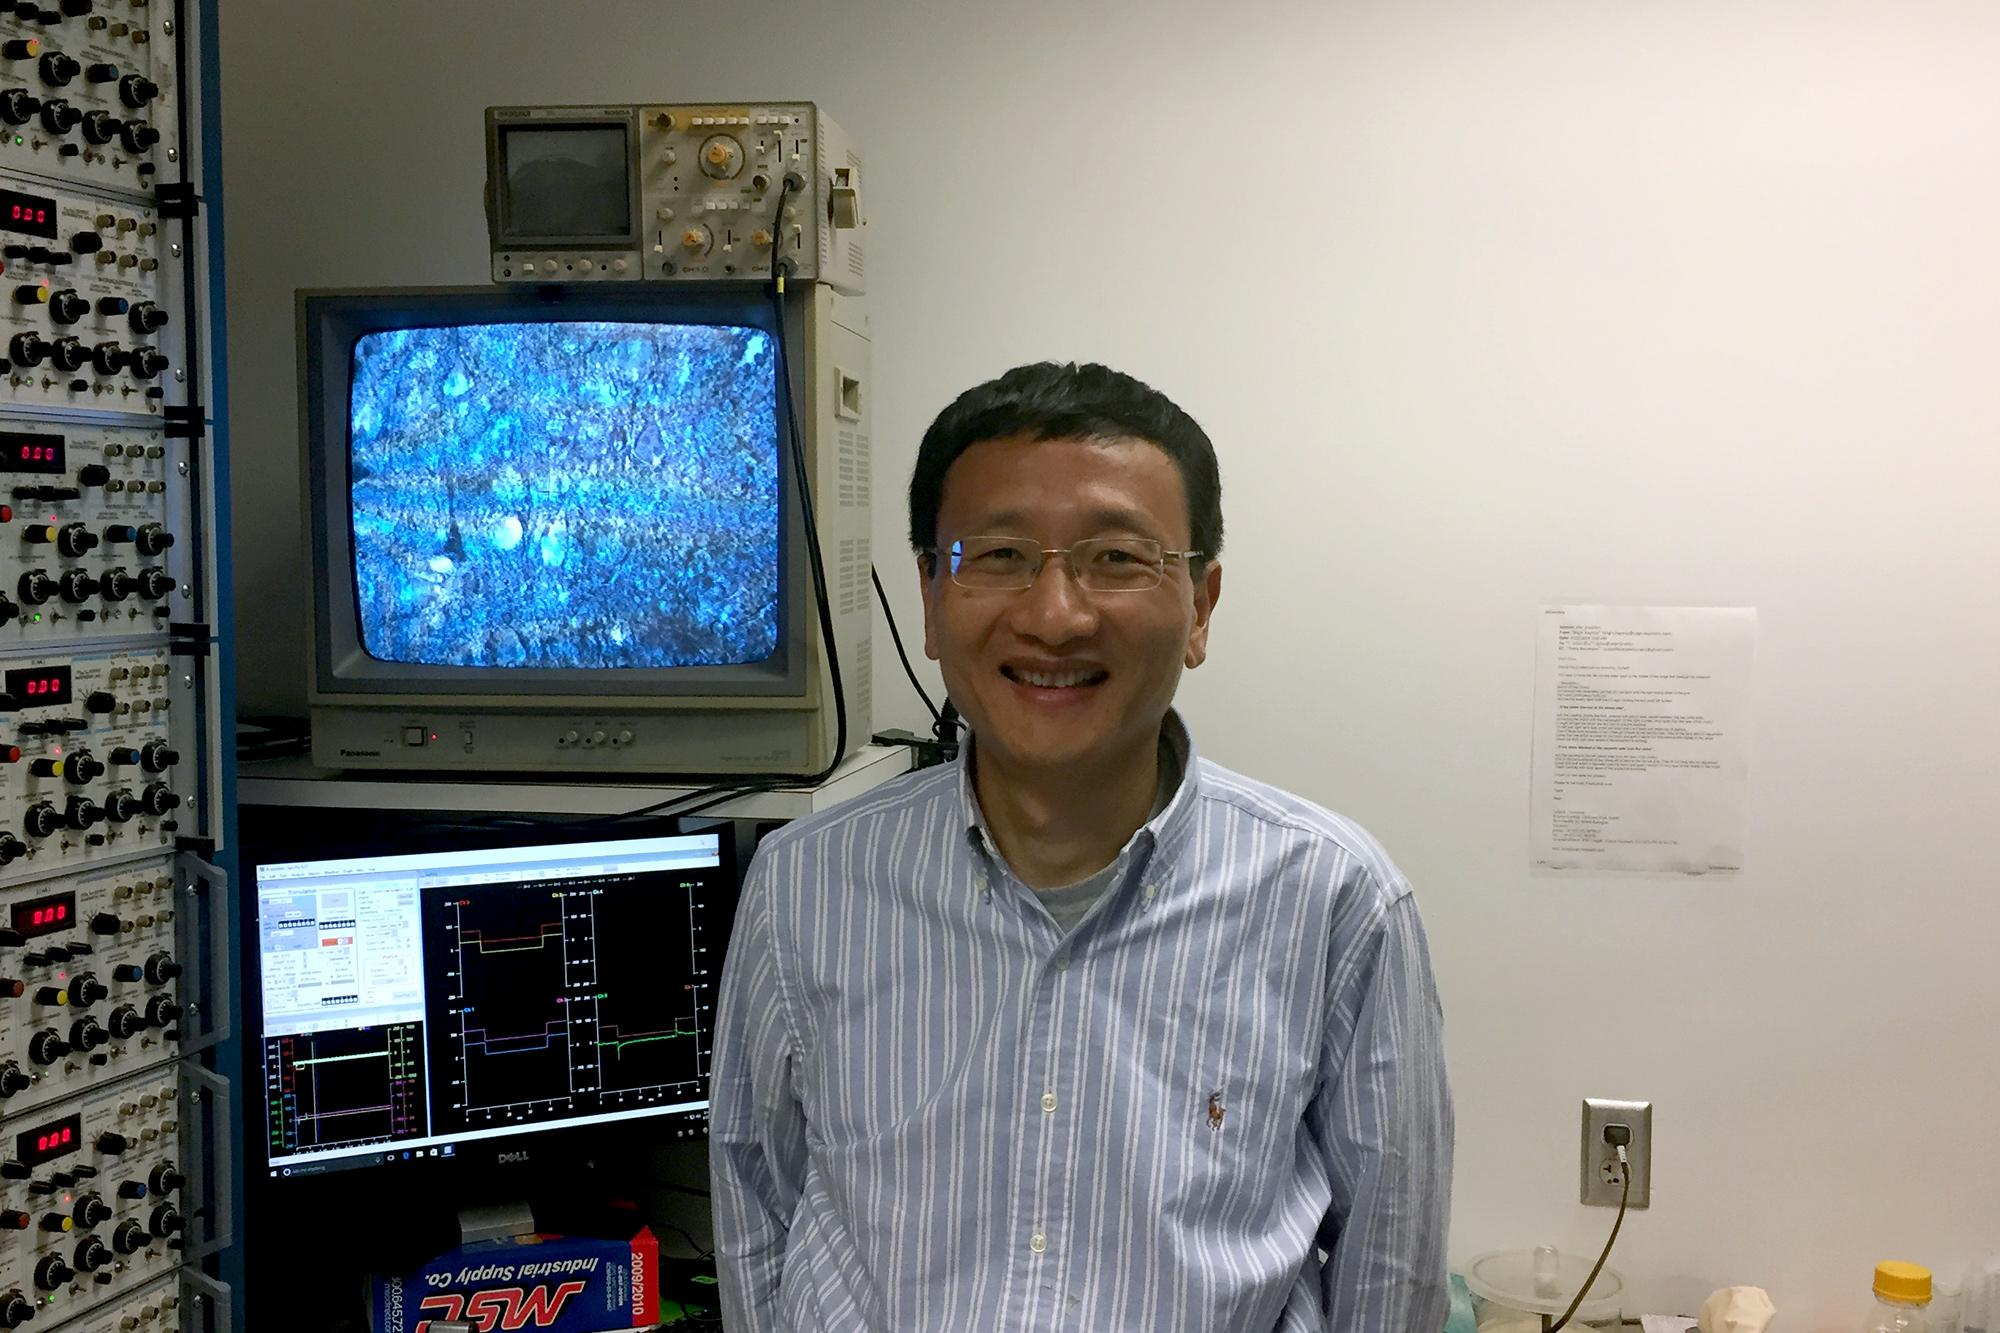 Associate Professor of Pharmacology J. Julius Zhu led the team that created the new technique.